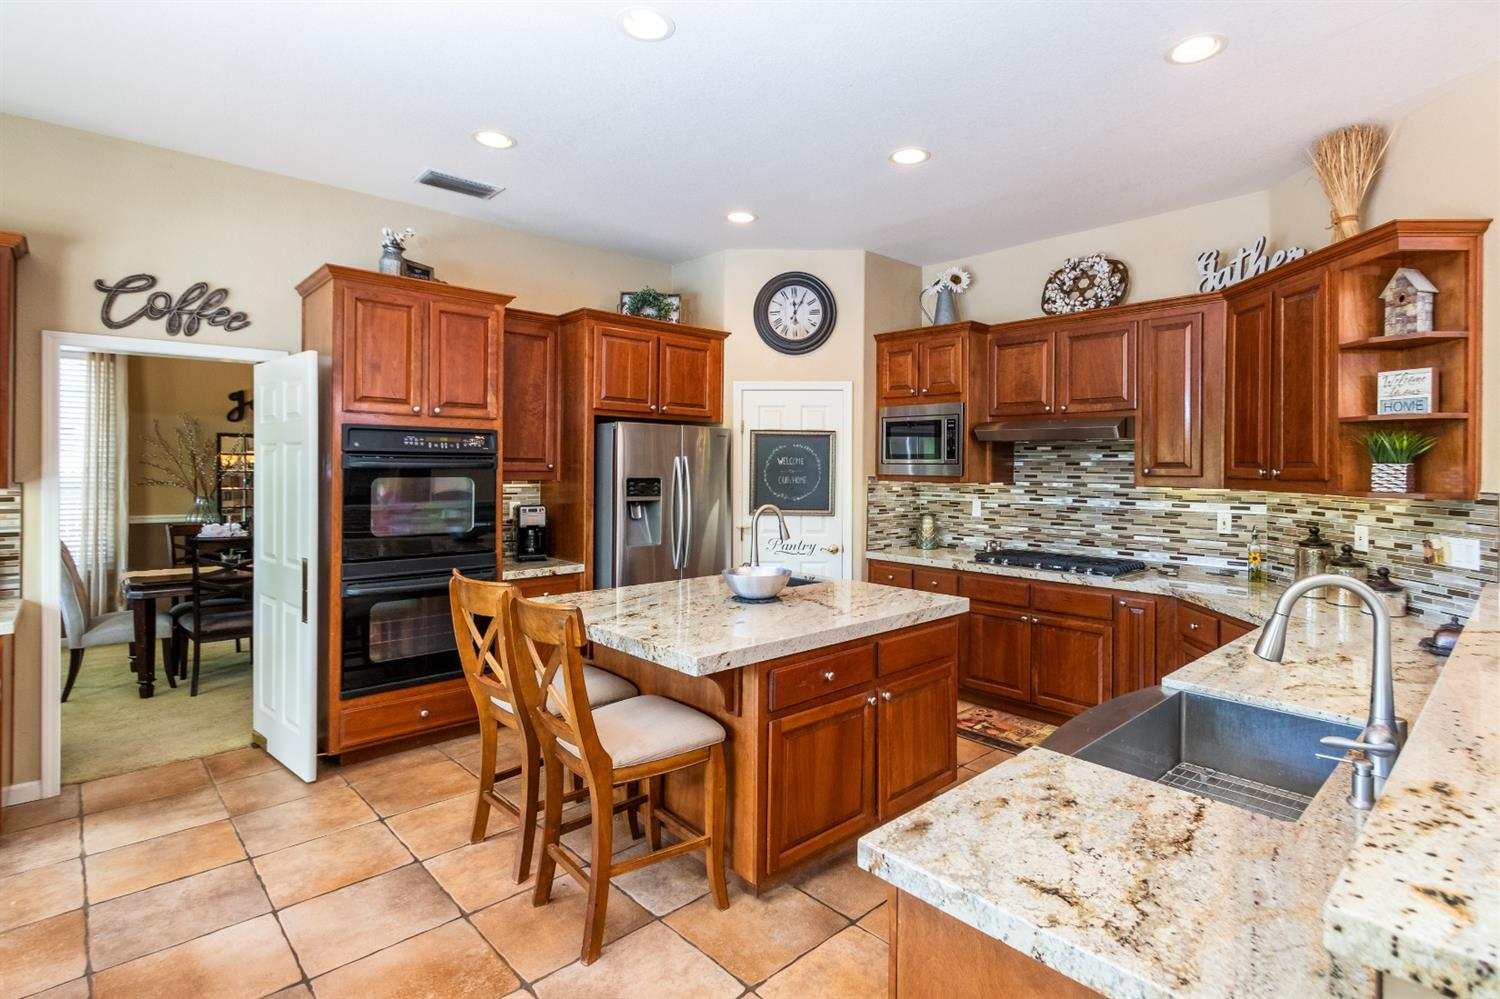 43 Hawk Crest Court, Roseville, CA 95678